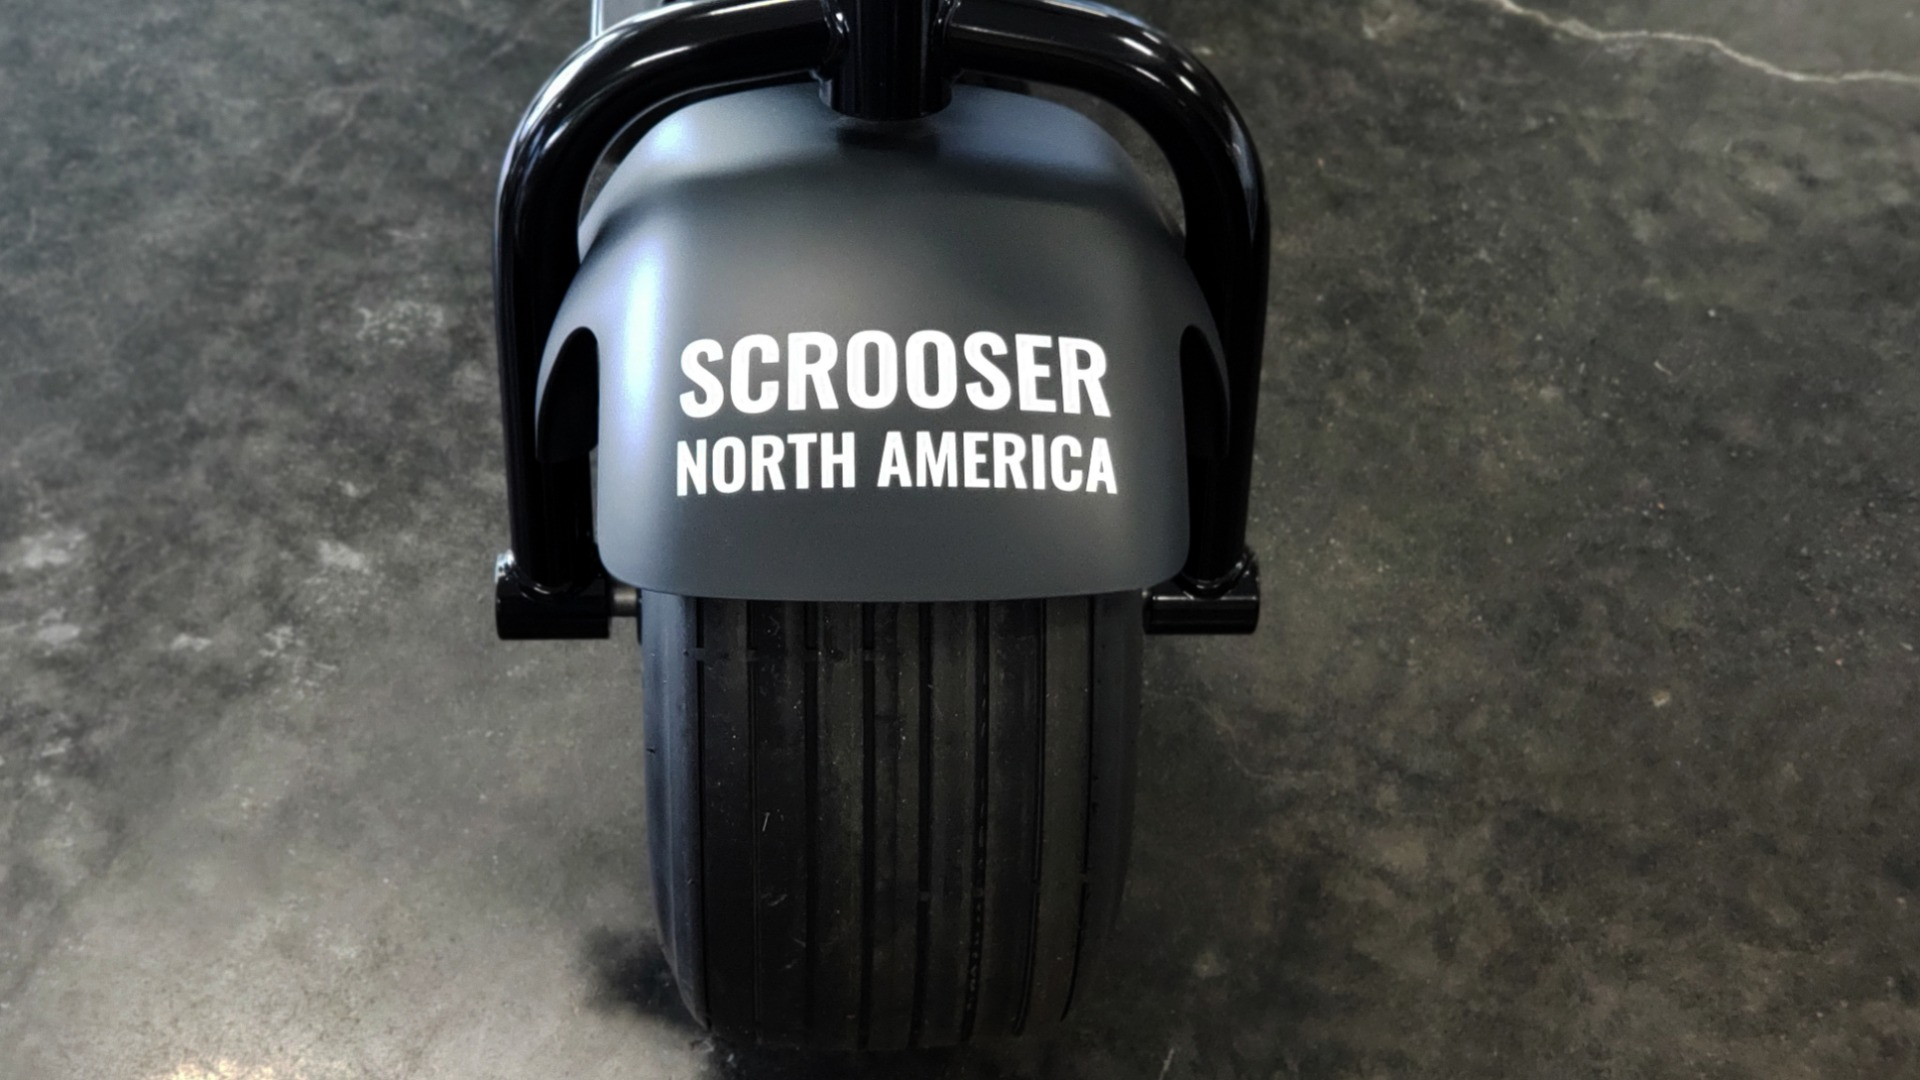 Used 2018 SCROOSER ELECTRIC SCOOTER SELF BALANCED / PITCH BLACK / 15.5 MPH / 34 MI RANGE for sale $1,699 at Formula Imports in Charlotte NC 28227 4